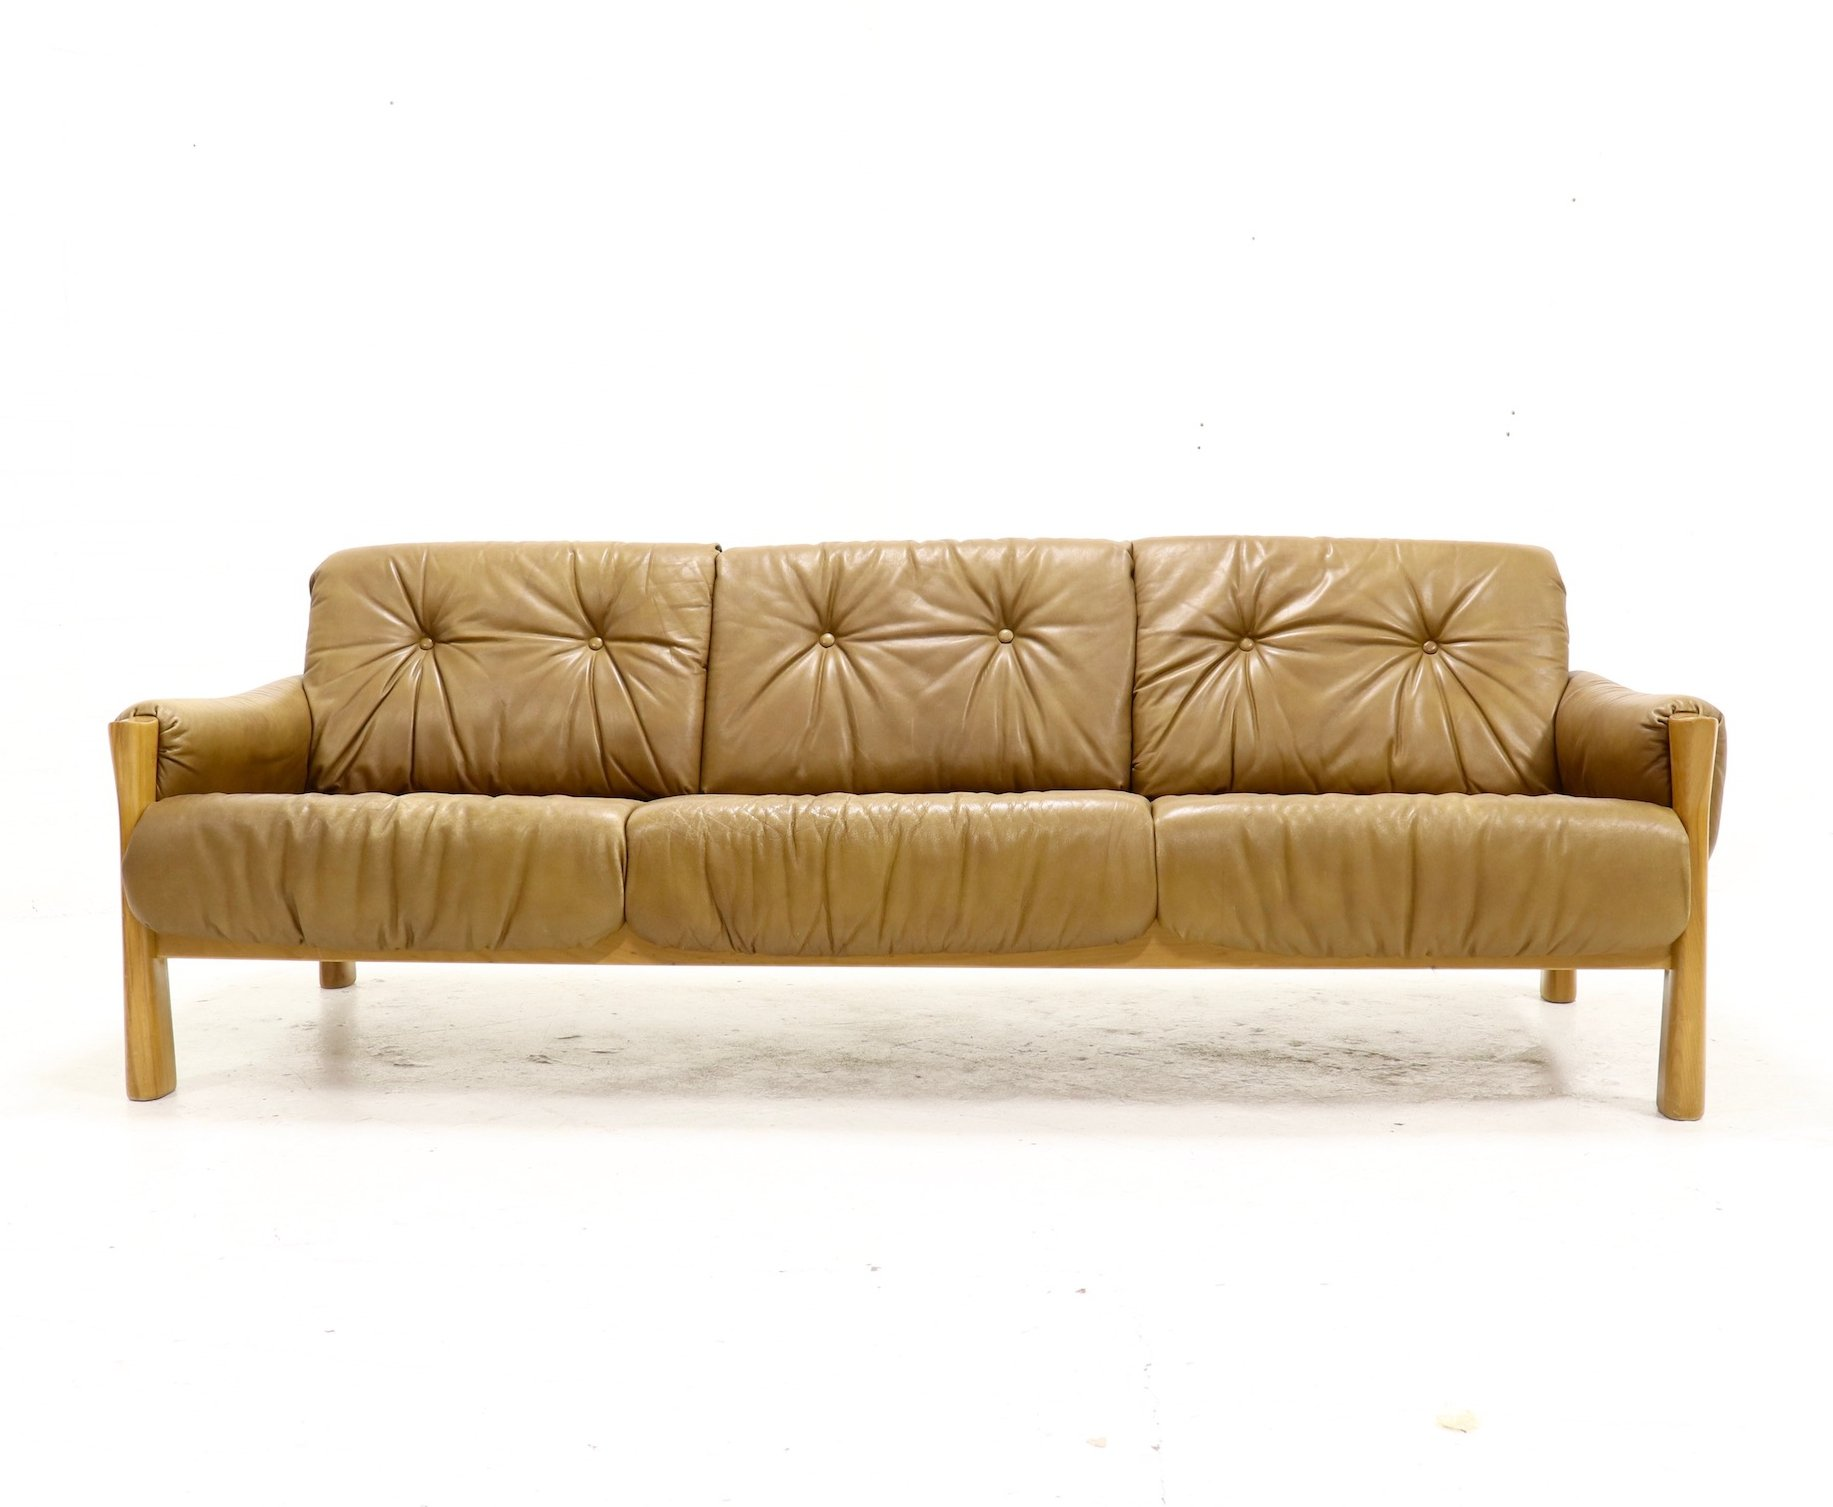 Mid Century Sofa In Tufted Leather Wood 1960s